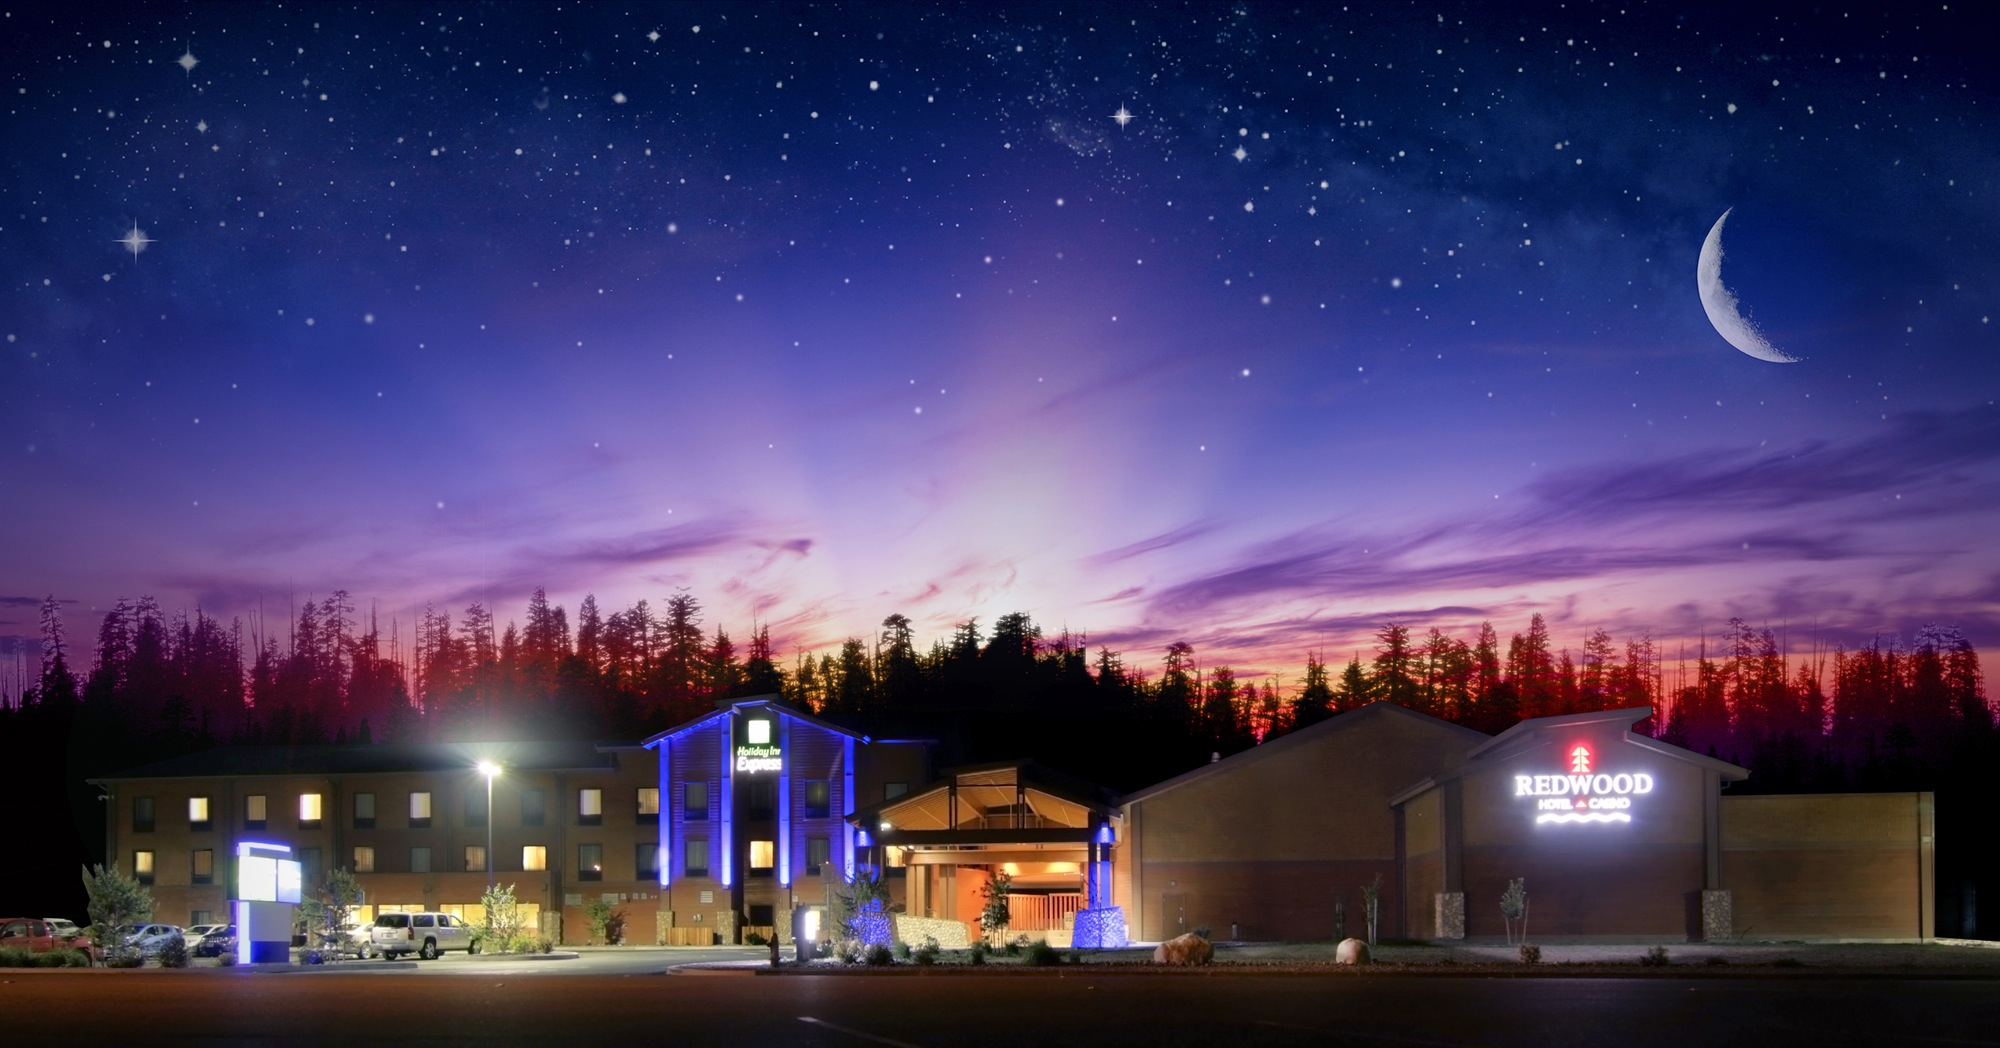 Yurok Tribe welcomes visitors to casino and hotel in Redwoods